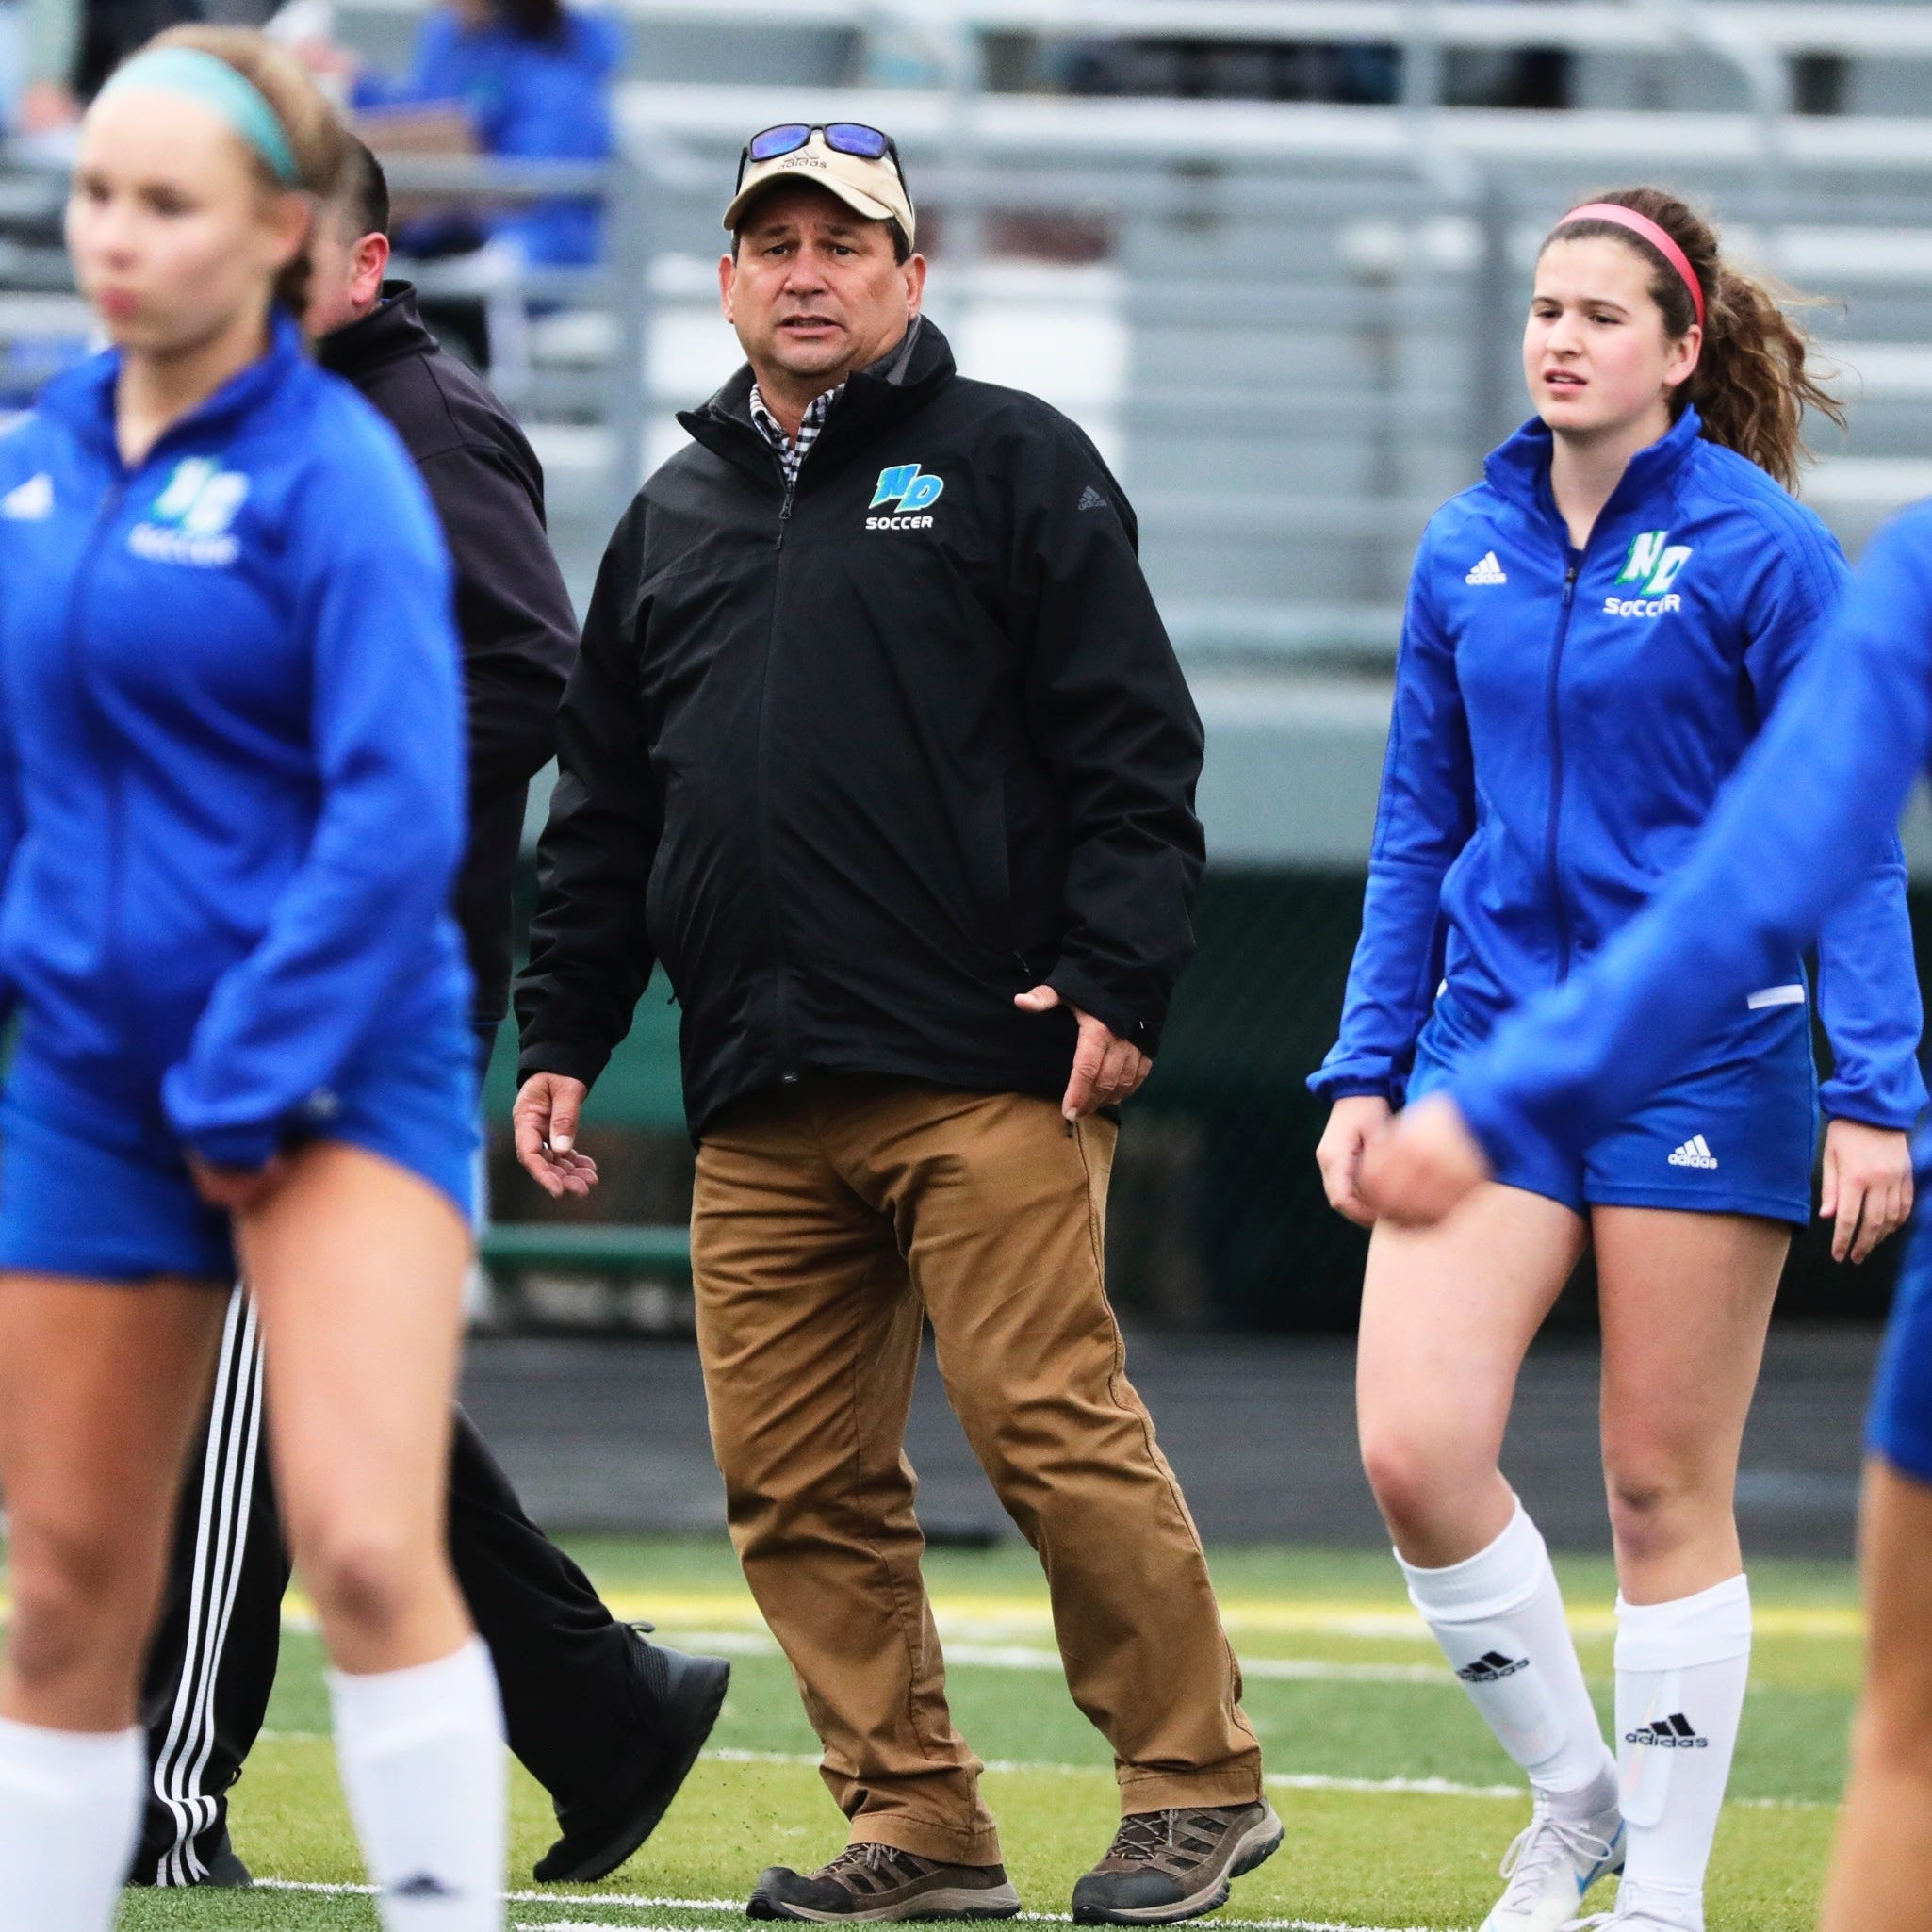 Bob Rickards leaves Green Bay Notre Dame soccer for St. Norbert College